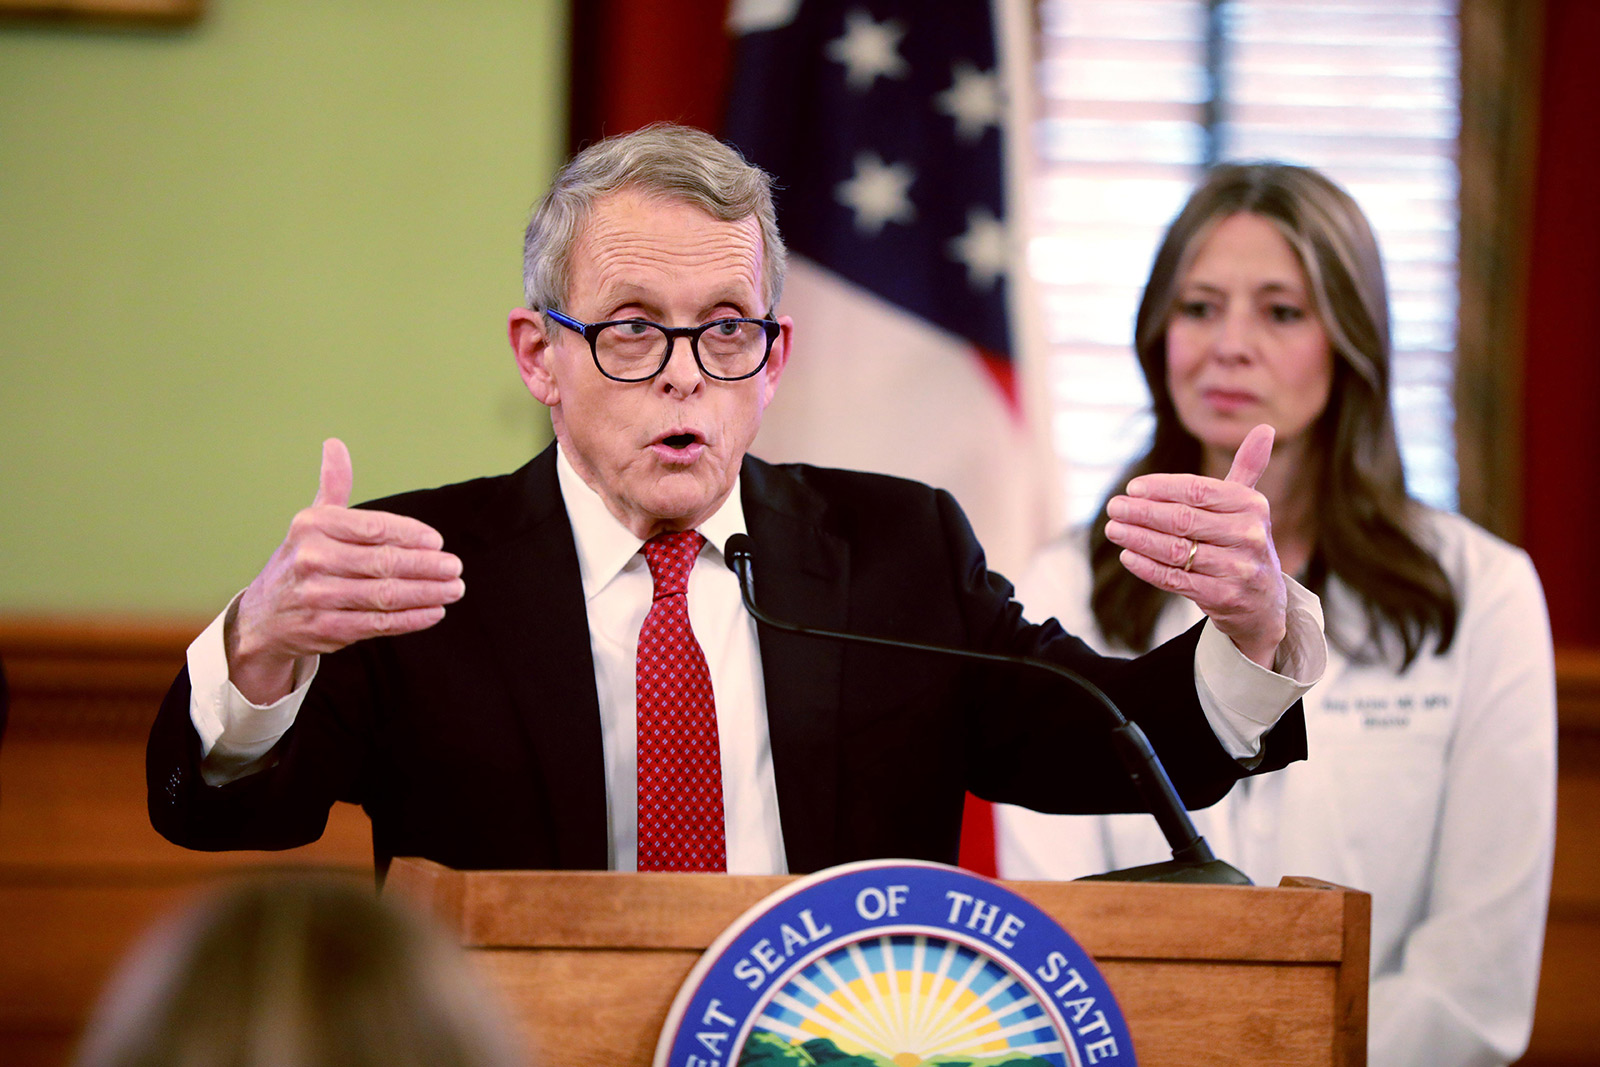 March 16, 2020, USA: Ohio Gov. Mike DeWine addresses members of the media during a press conference updating the public on COVID-19 on Thursday, March 12, 2020 at the Ohio Statehouse in Columbus, Ohio. (Credit Image: © TNS via ZUMA Wire)